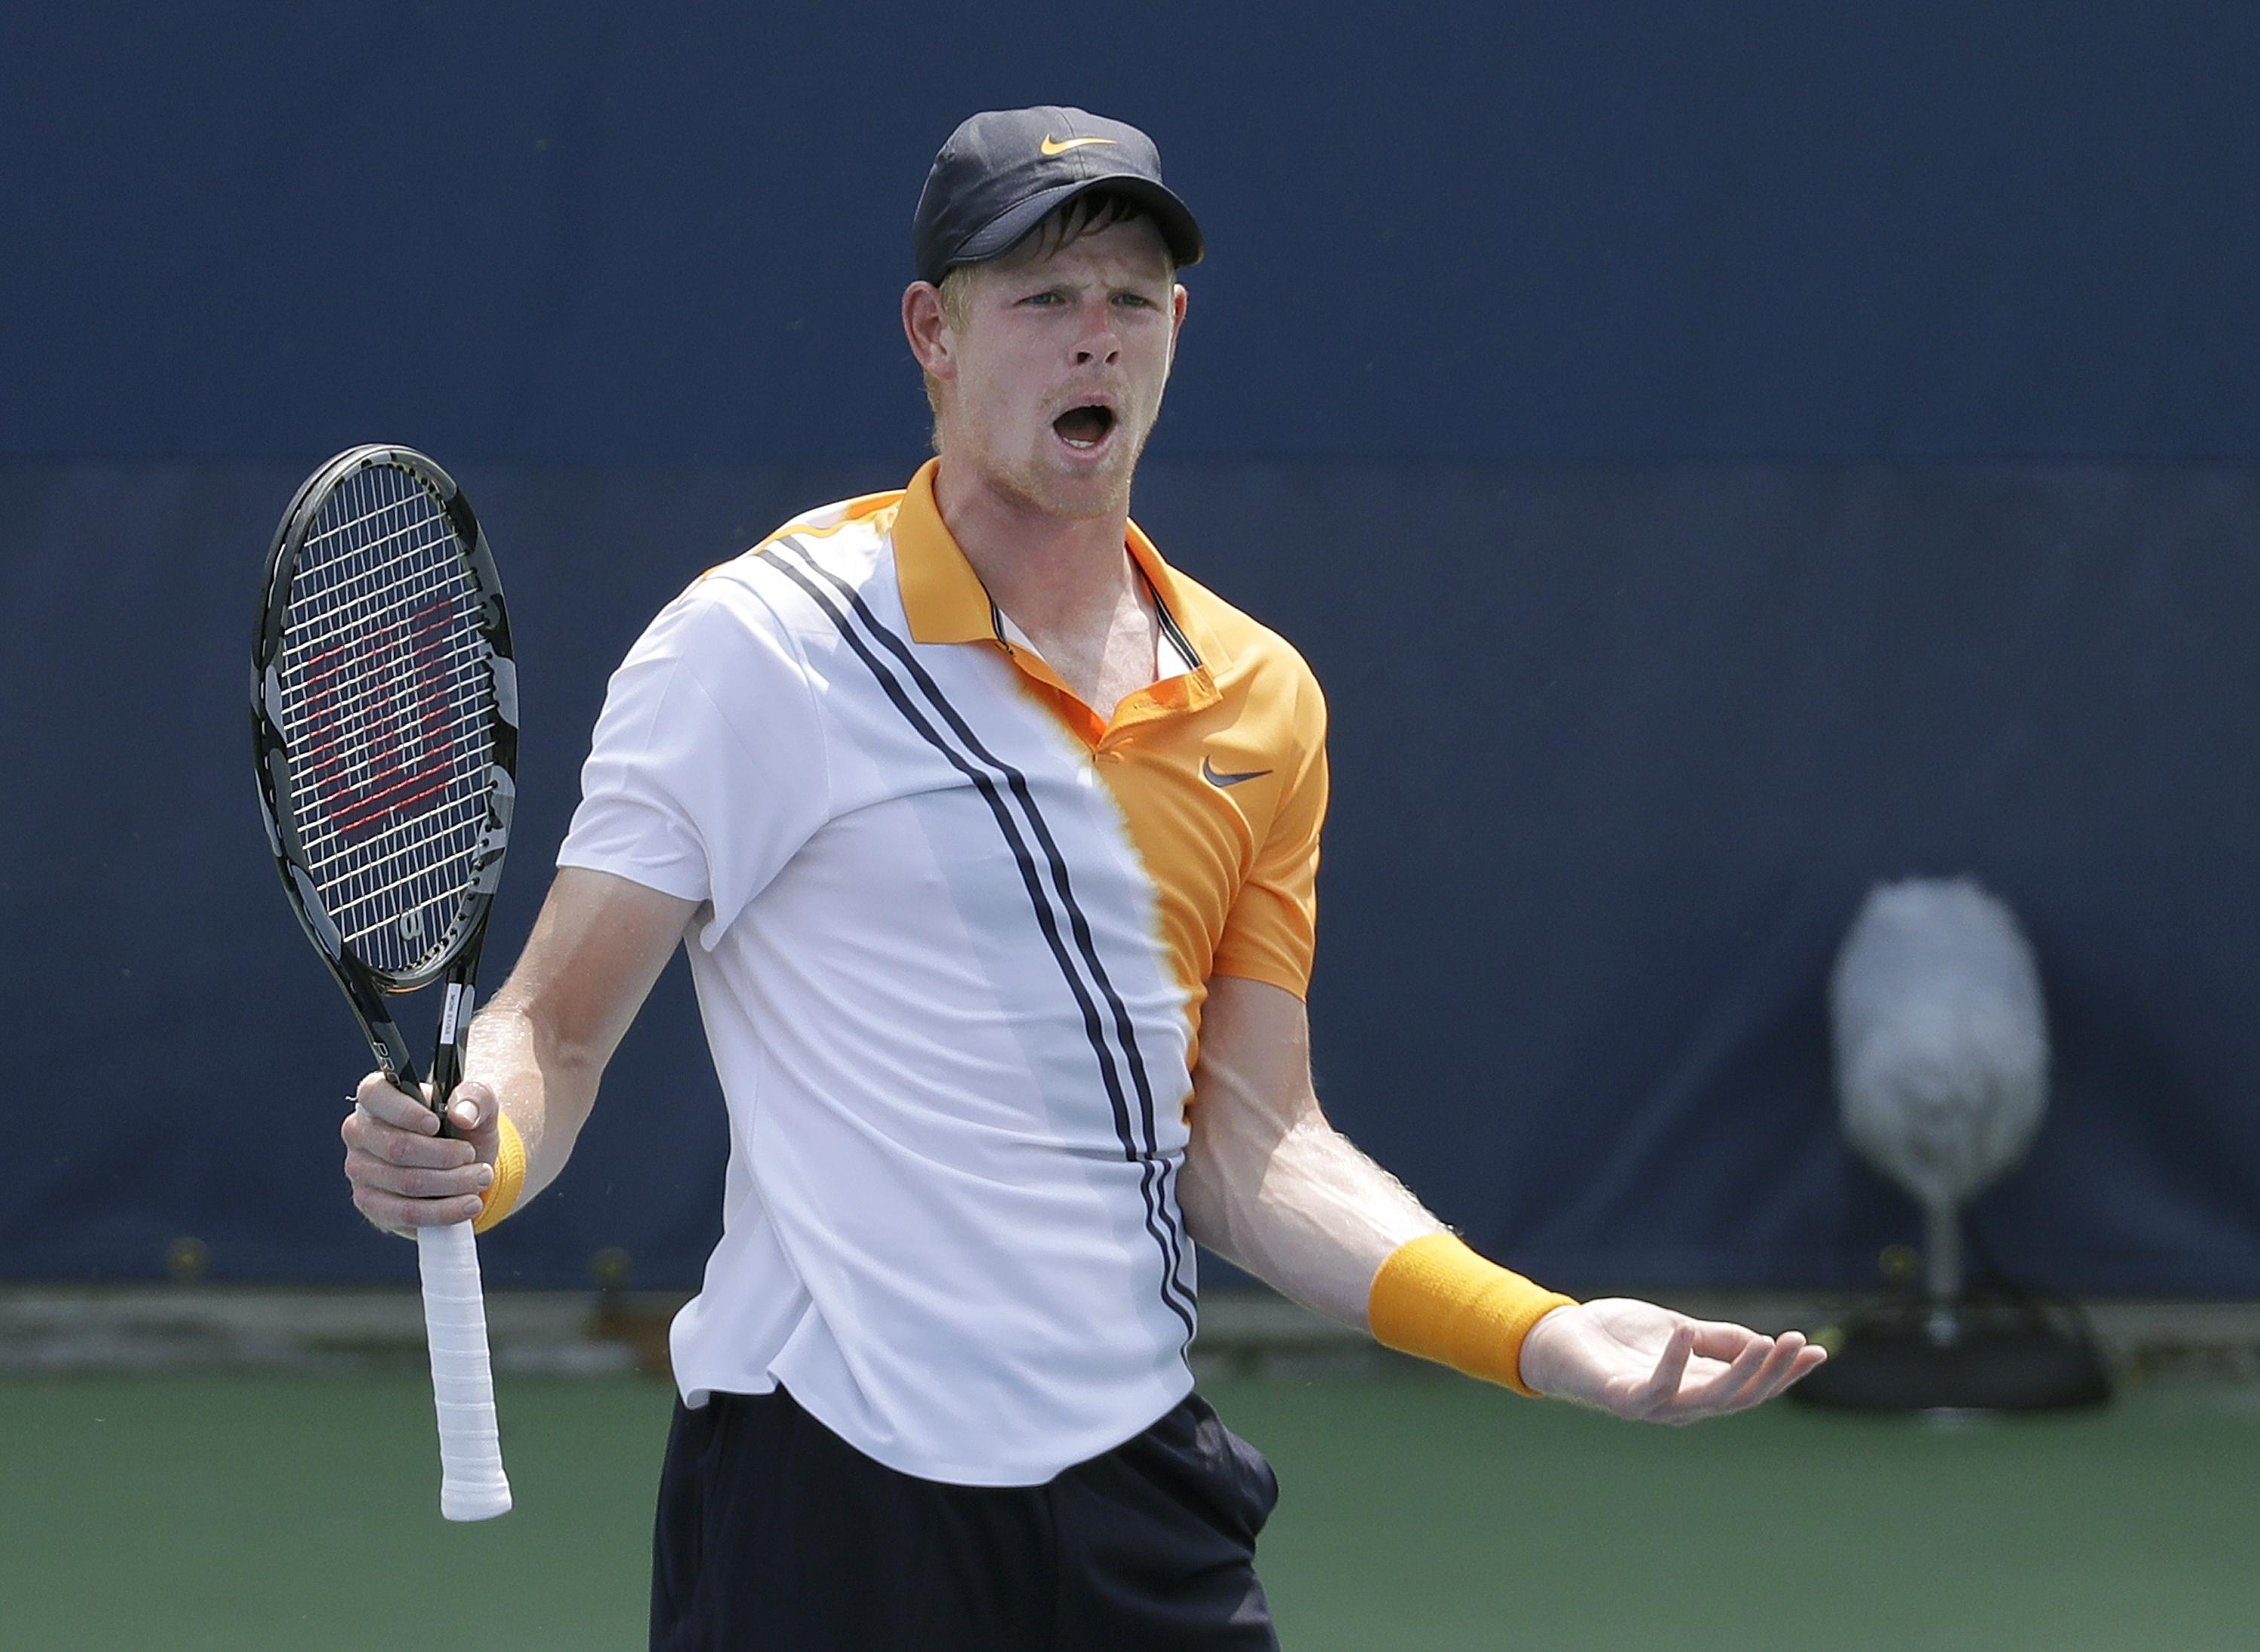 Kyle Edmund loses in first round of US Open